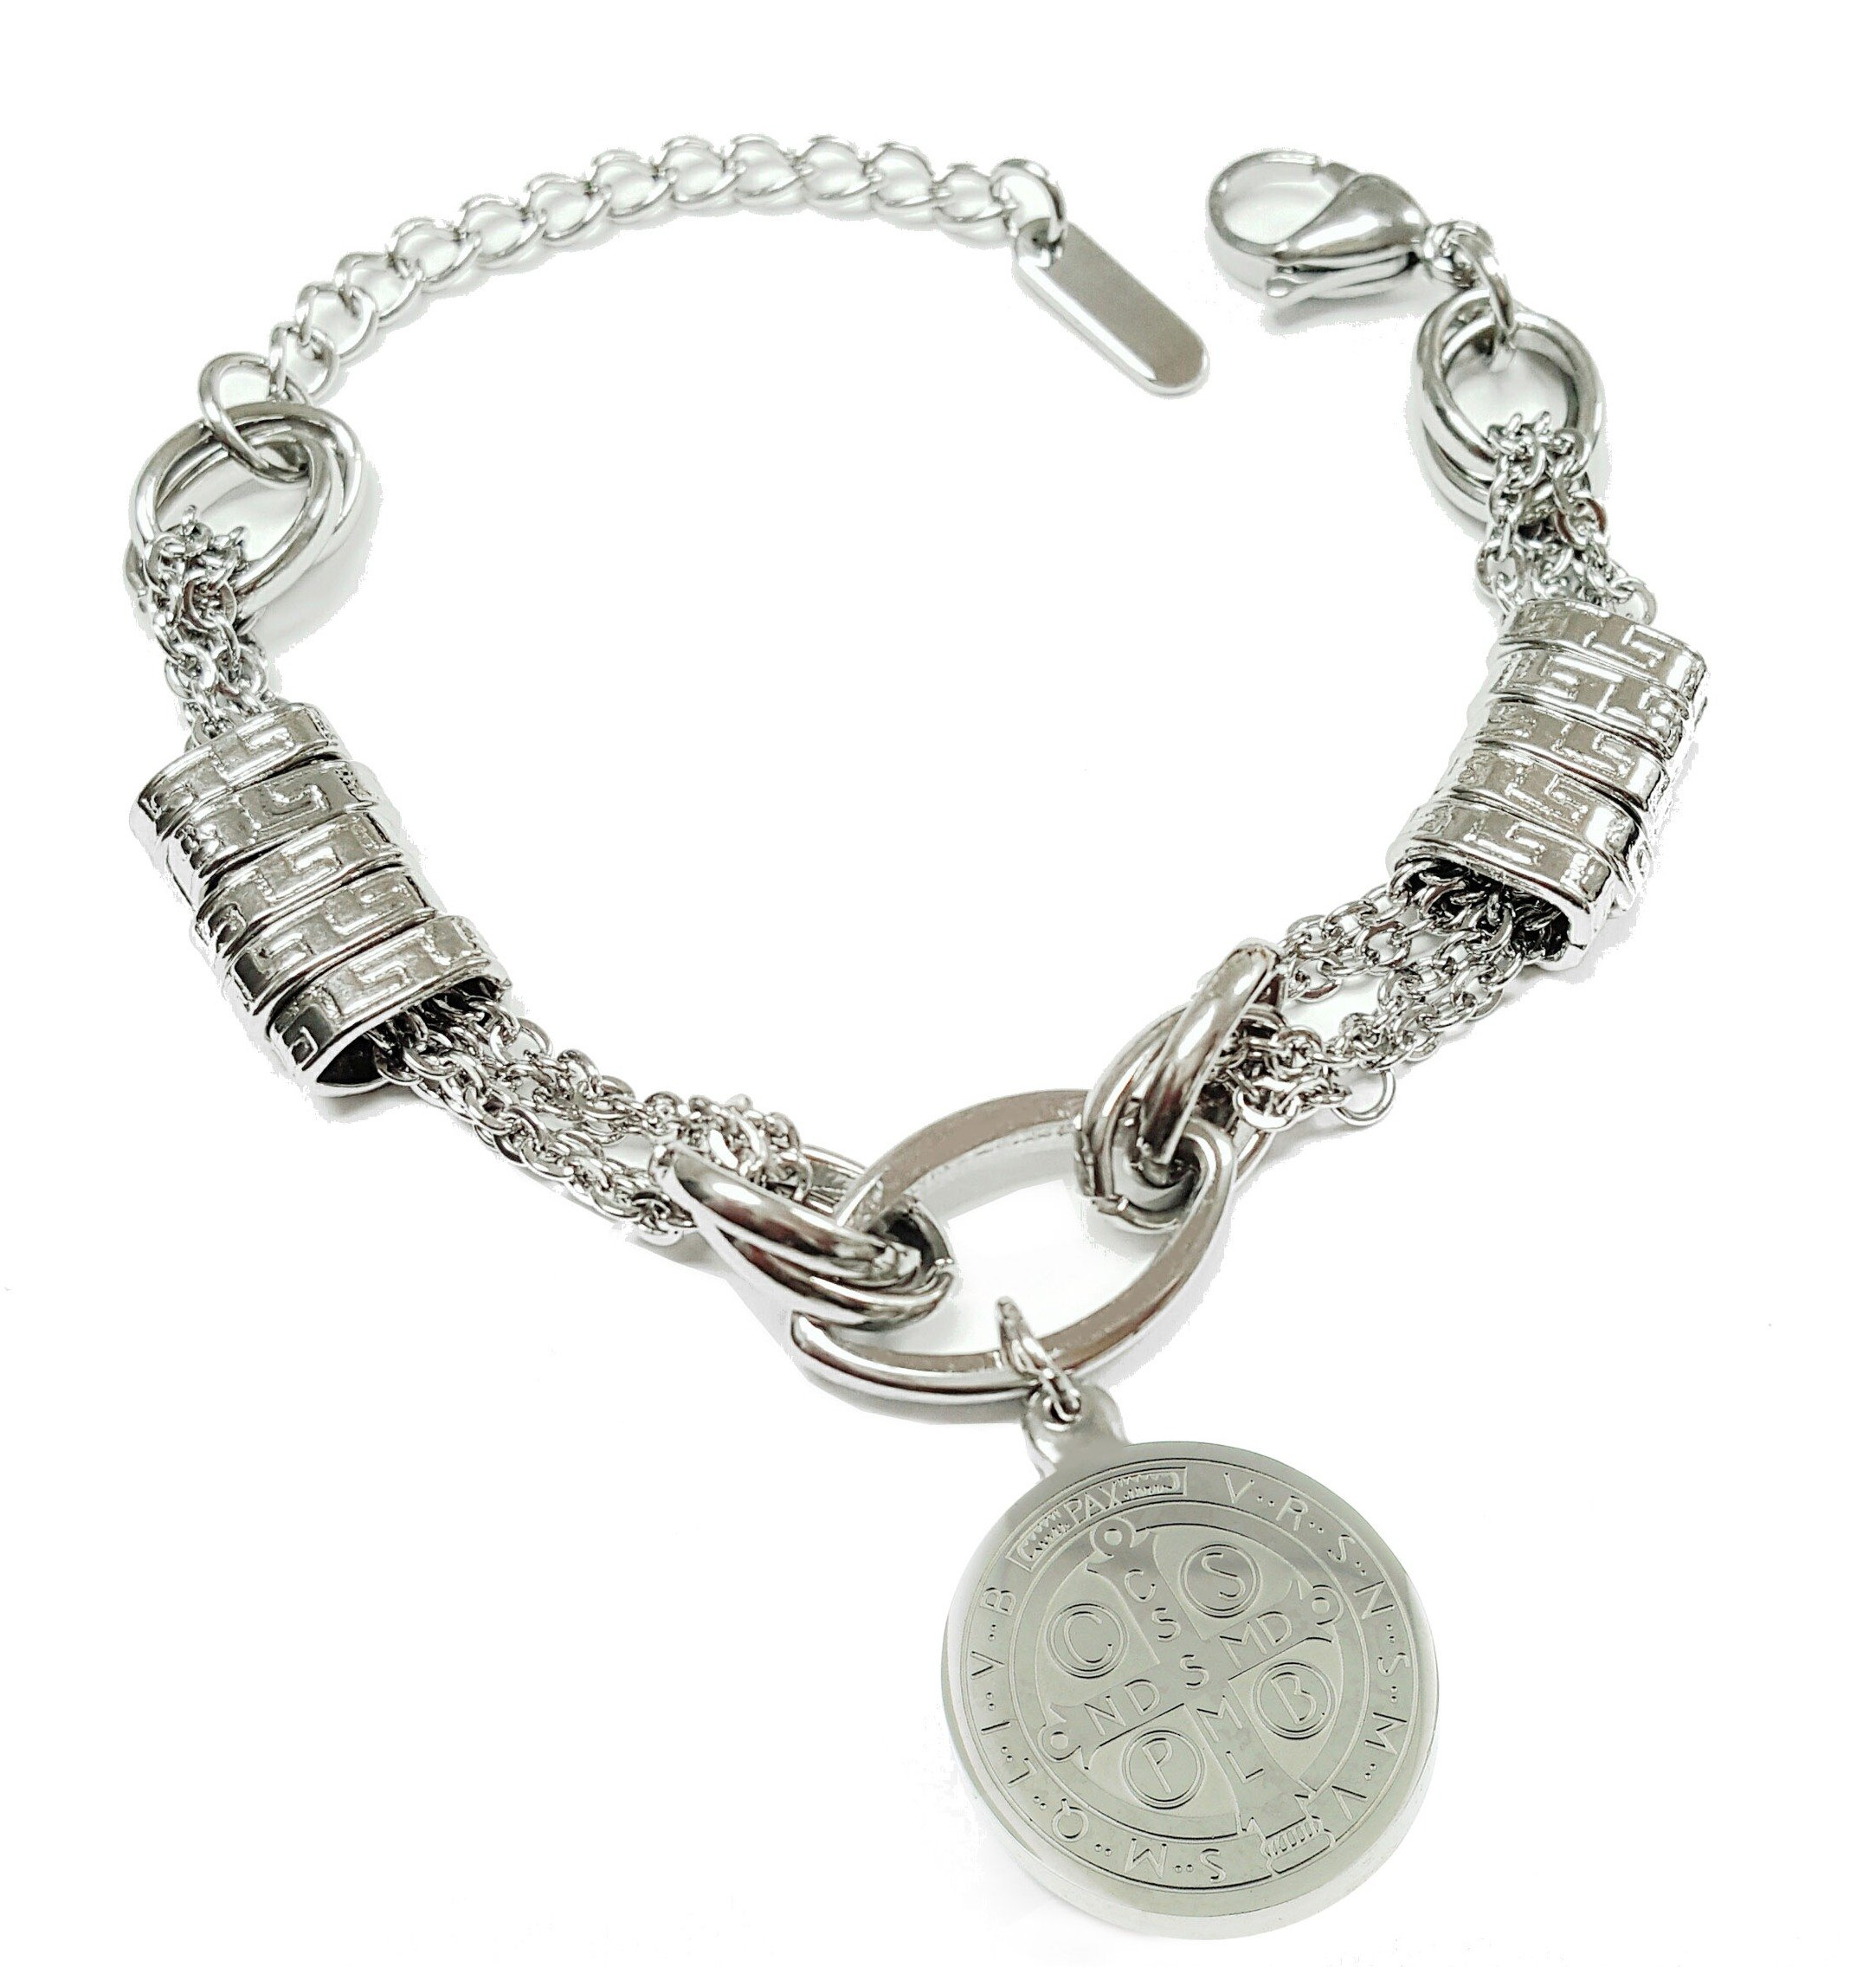 Catholic - Stainless Steel In Style Saint Benedict Bracelet - San Benedicto